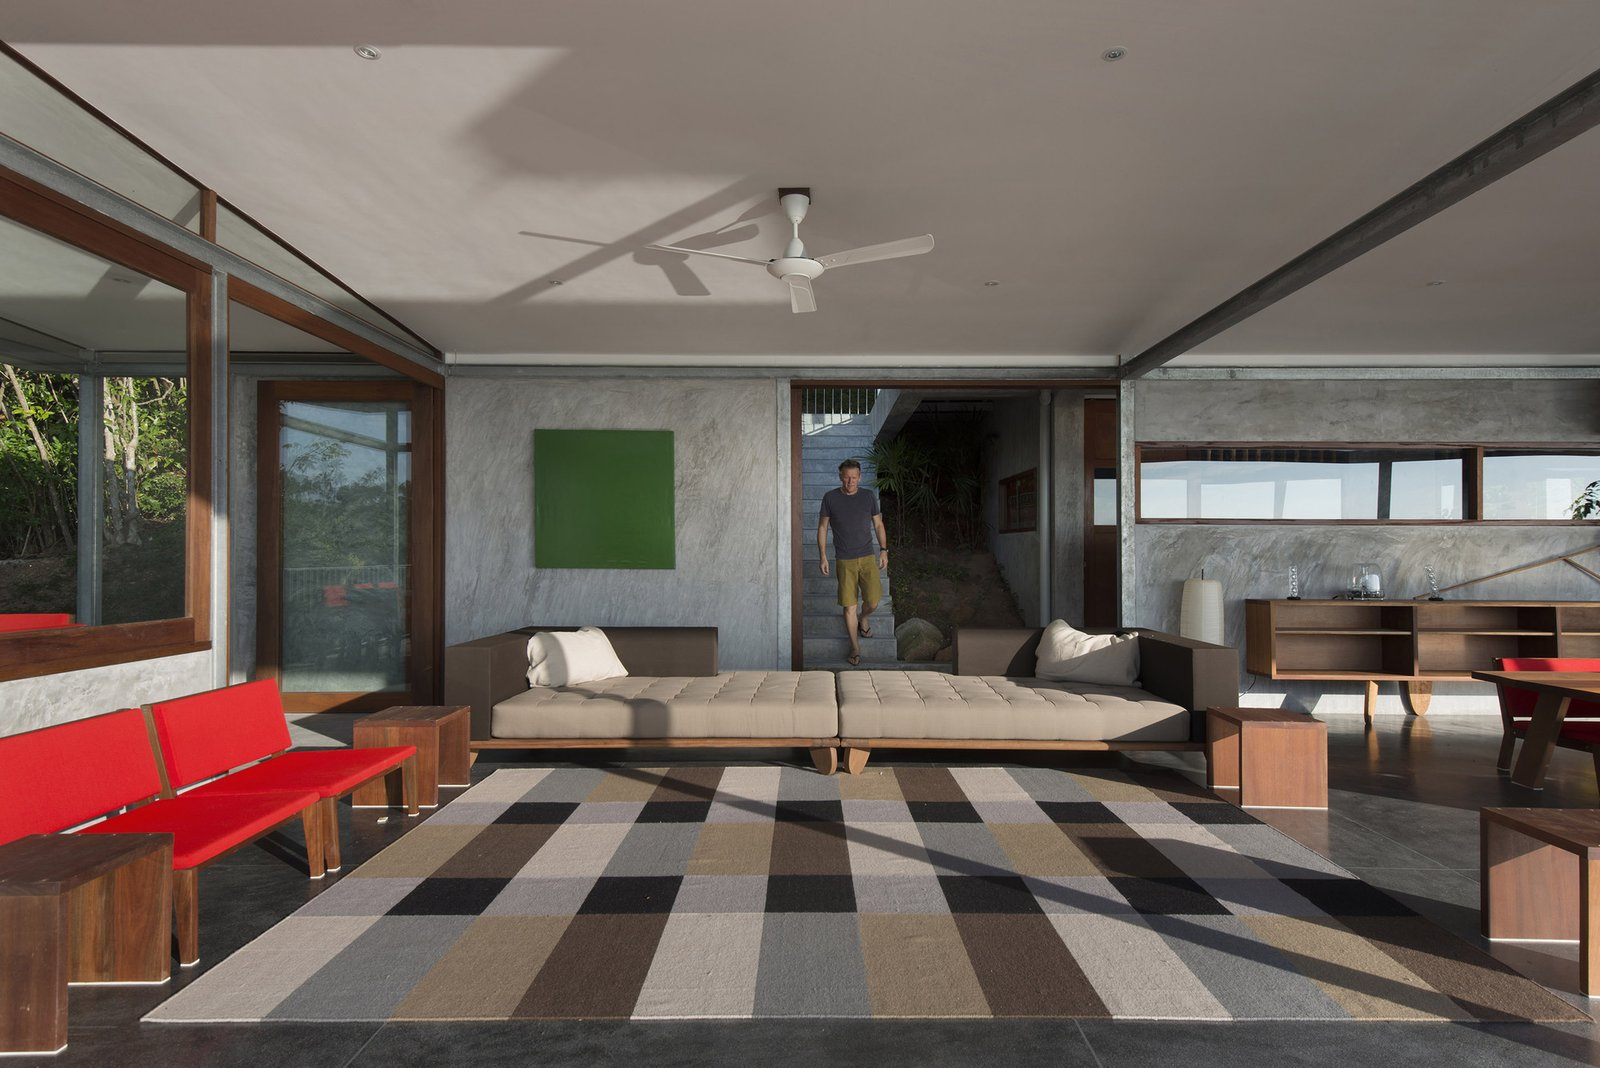 Infinity, Living, Wood, Concrete, Trees, Side Yard, Chair, Recessed, Sofa, Concrete, End Tables, Shelves, and Rug  Living Trees Wood Photos from Take a Trip to This Photographer-Designed Concrete Home in Thailand